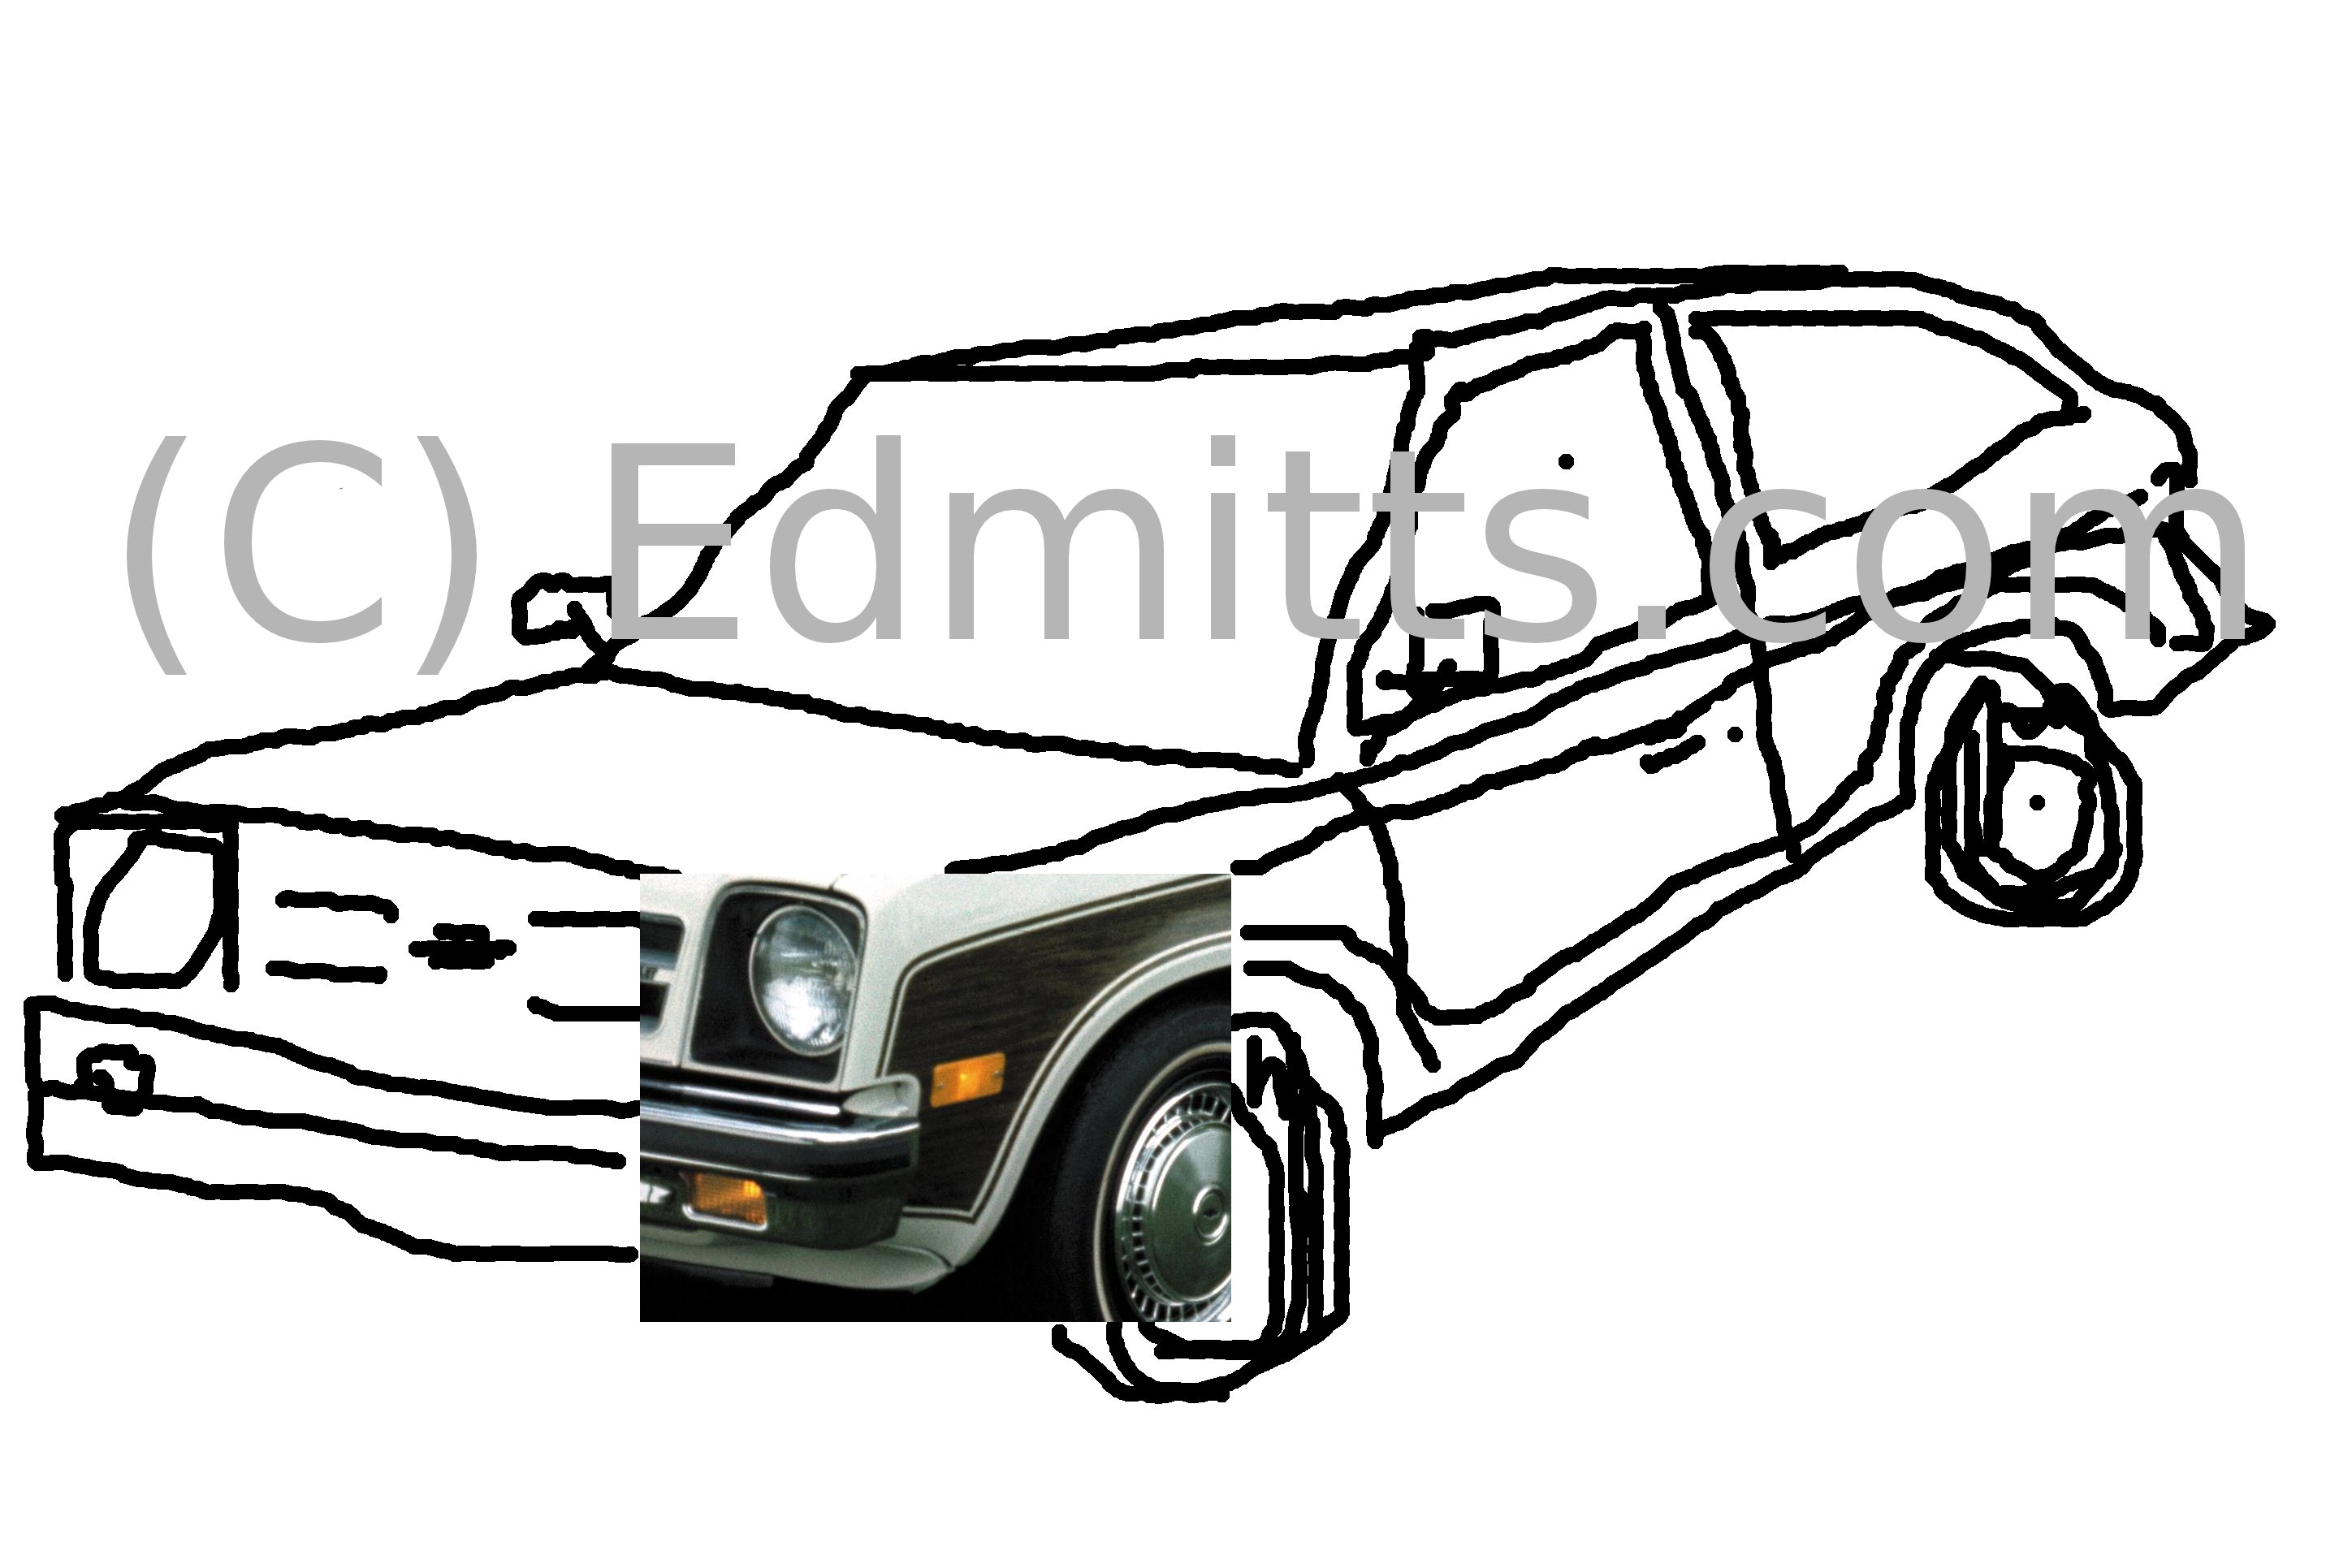 Edmitts.com's exclusive computer-generated illustration of the new car, yesterday